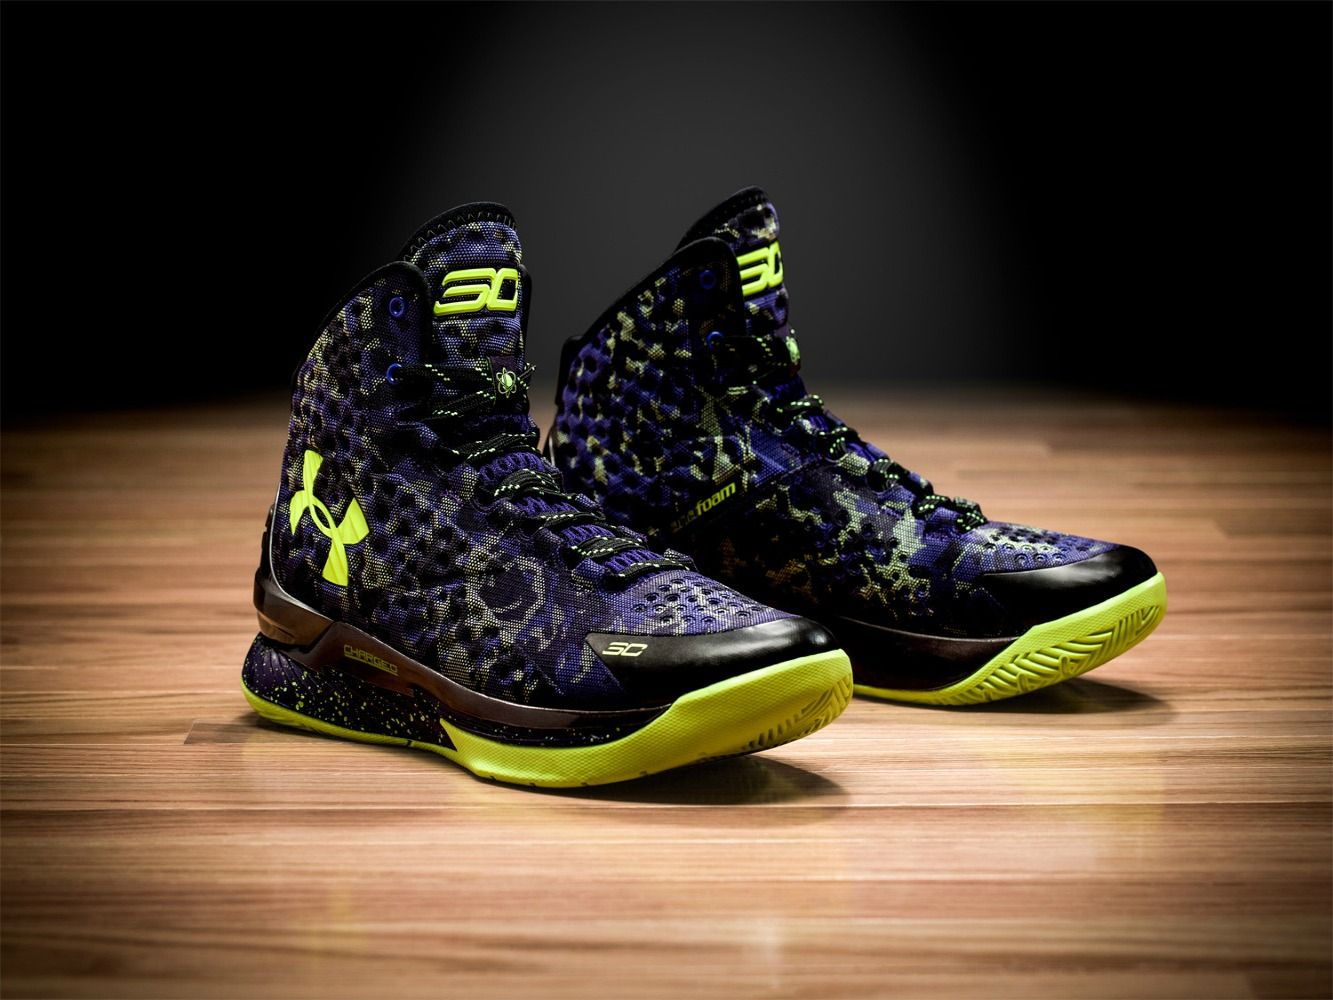 8336f99b65a1 Under Armour unveils a special edition Curry One for the 2015 All-Star Game.